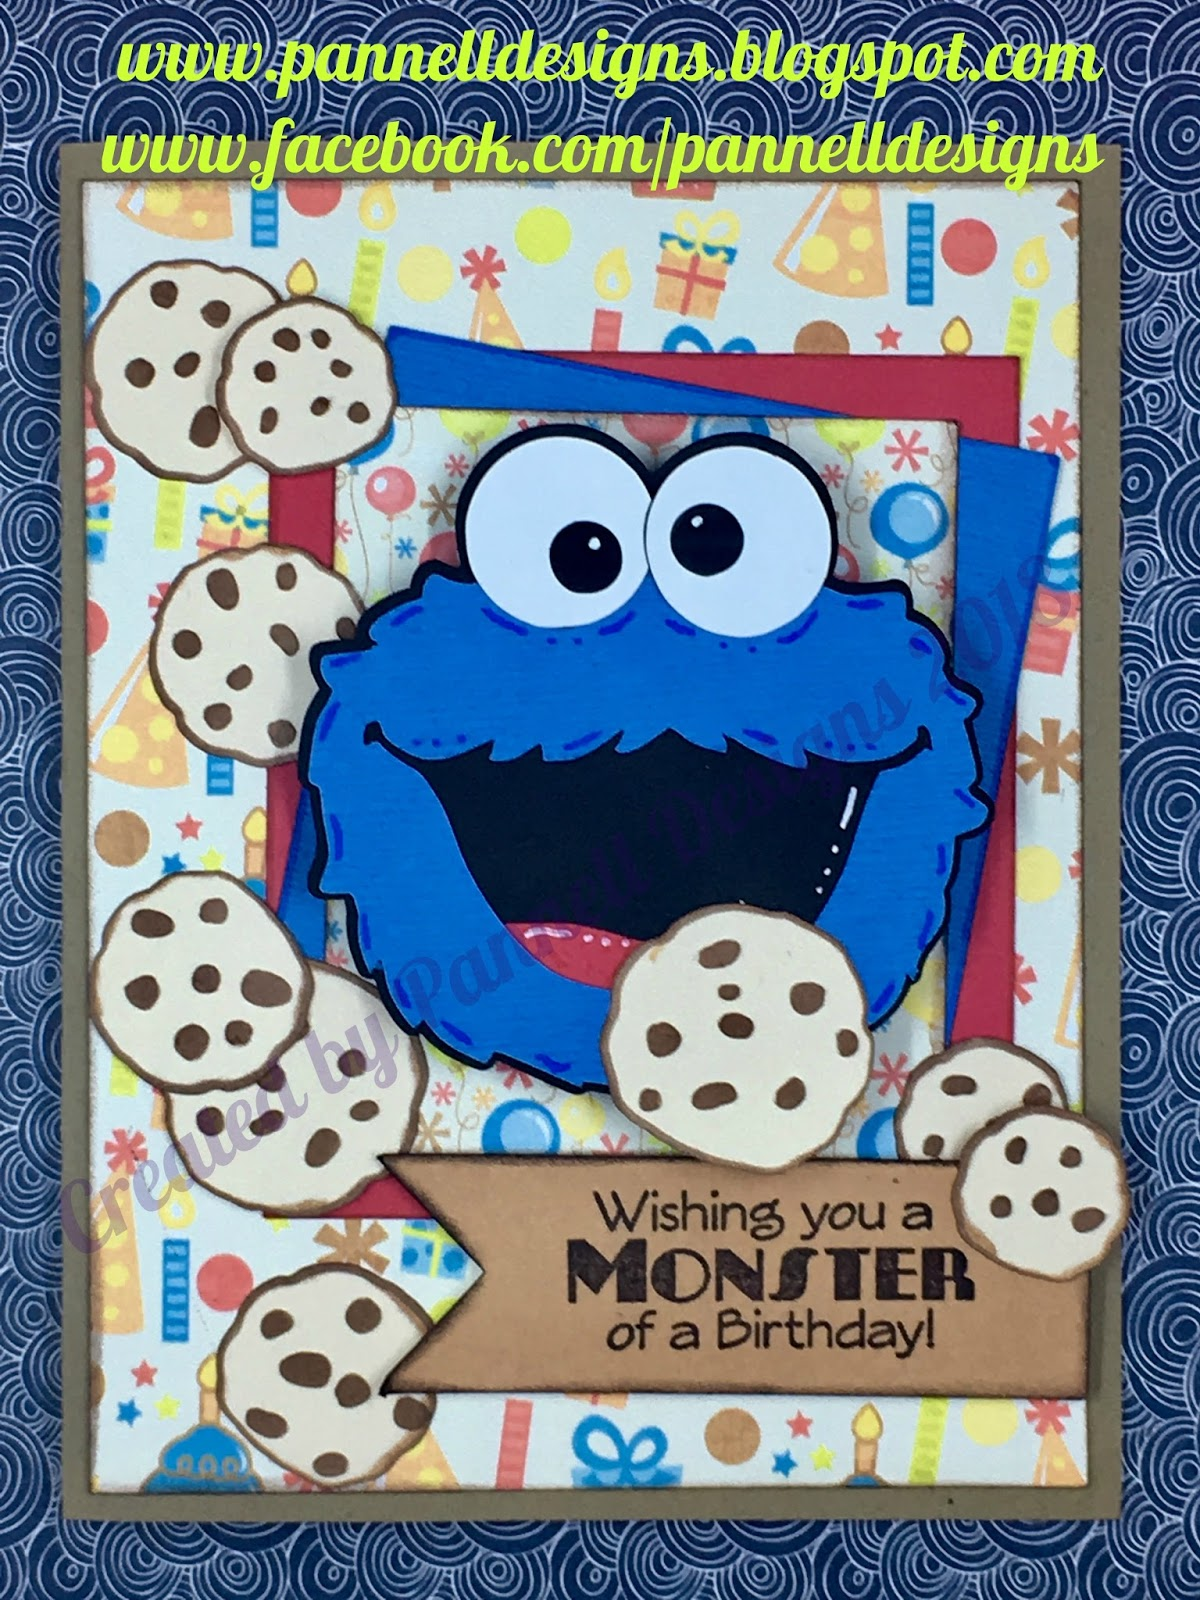 Pannell designs paper crafting cookie monster birthday card cookiemonsterfaceimg7002g bookmarktalkfo Choice Image